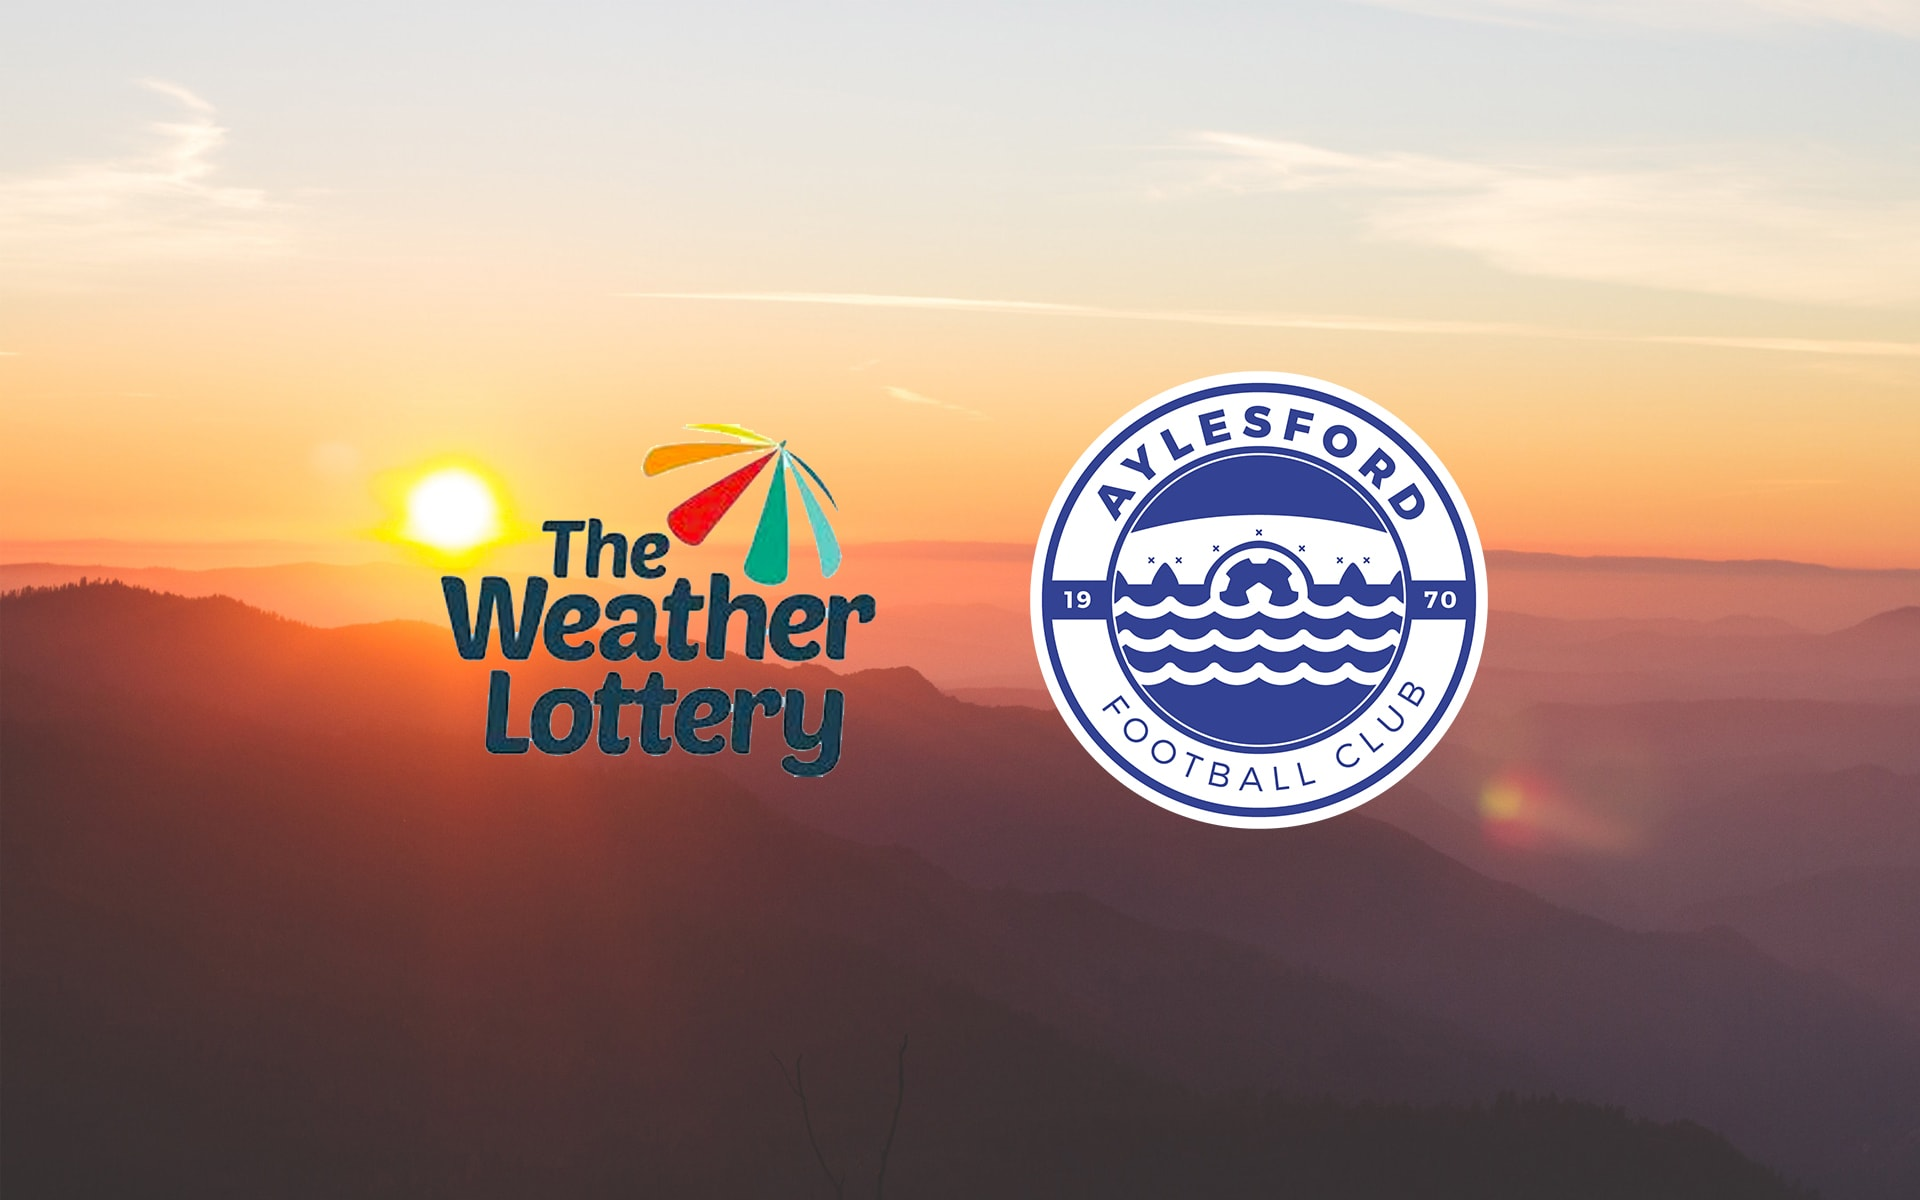 weather-lottery-aylesford-fc-min